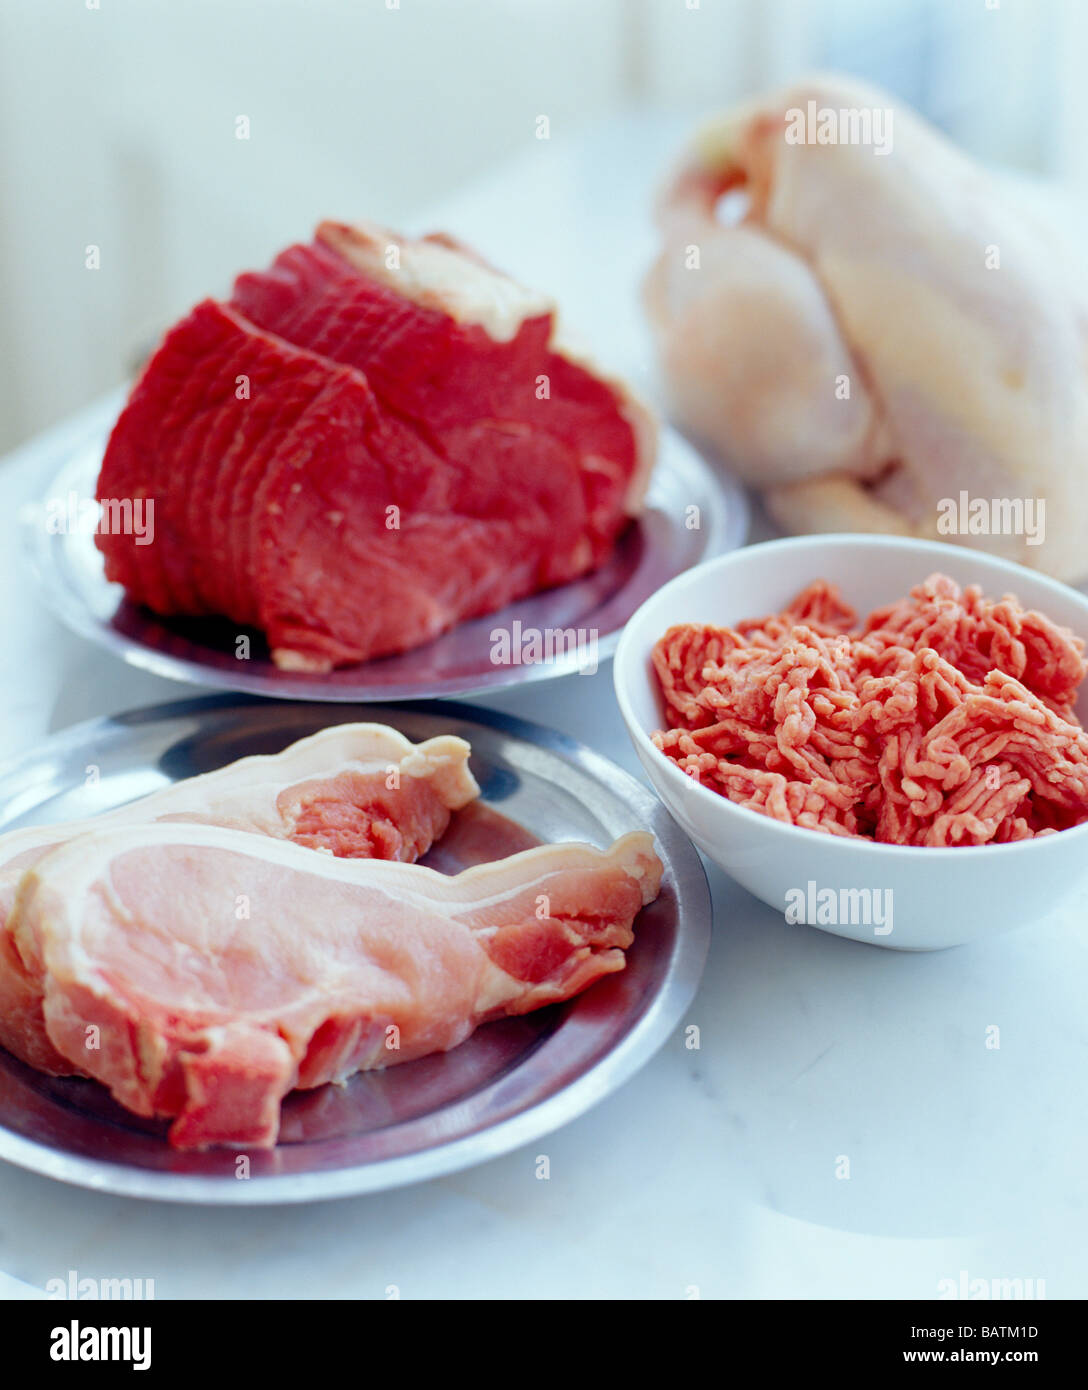 Lower Cholesterol Beef Stock Photos & Lower Cholesterol Beef